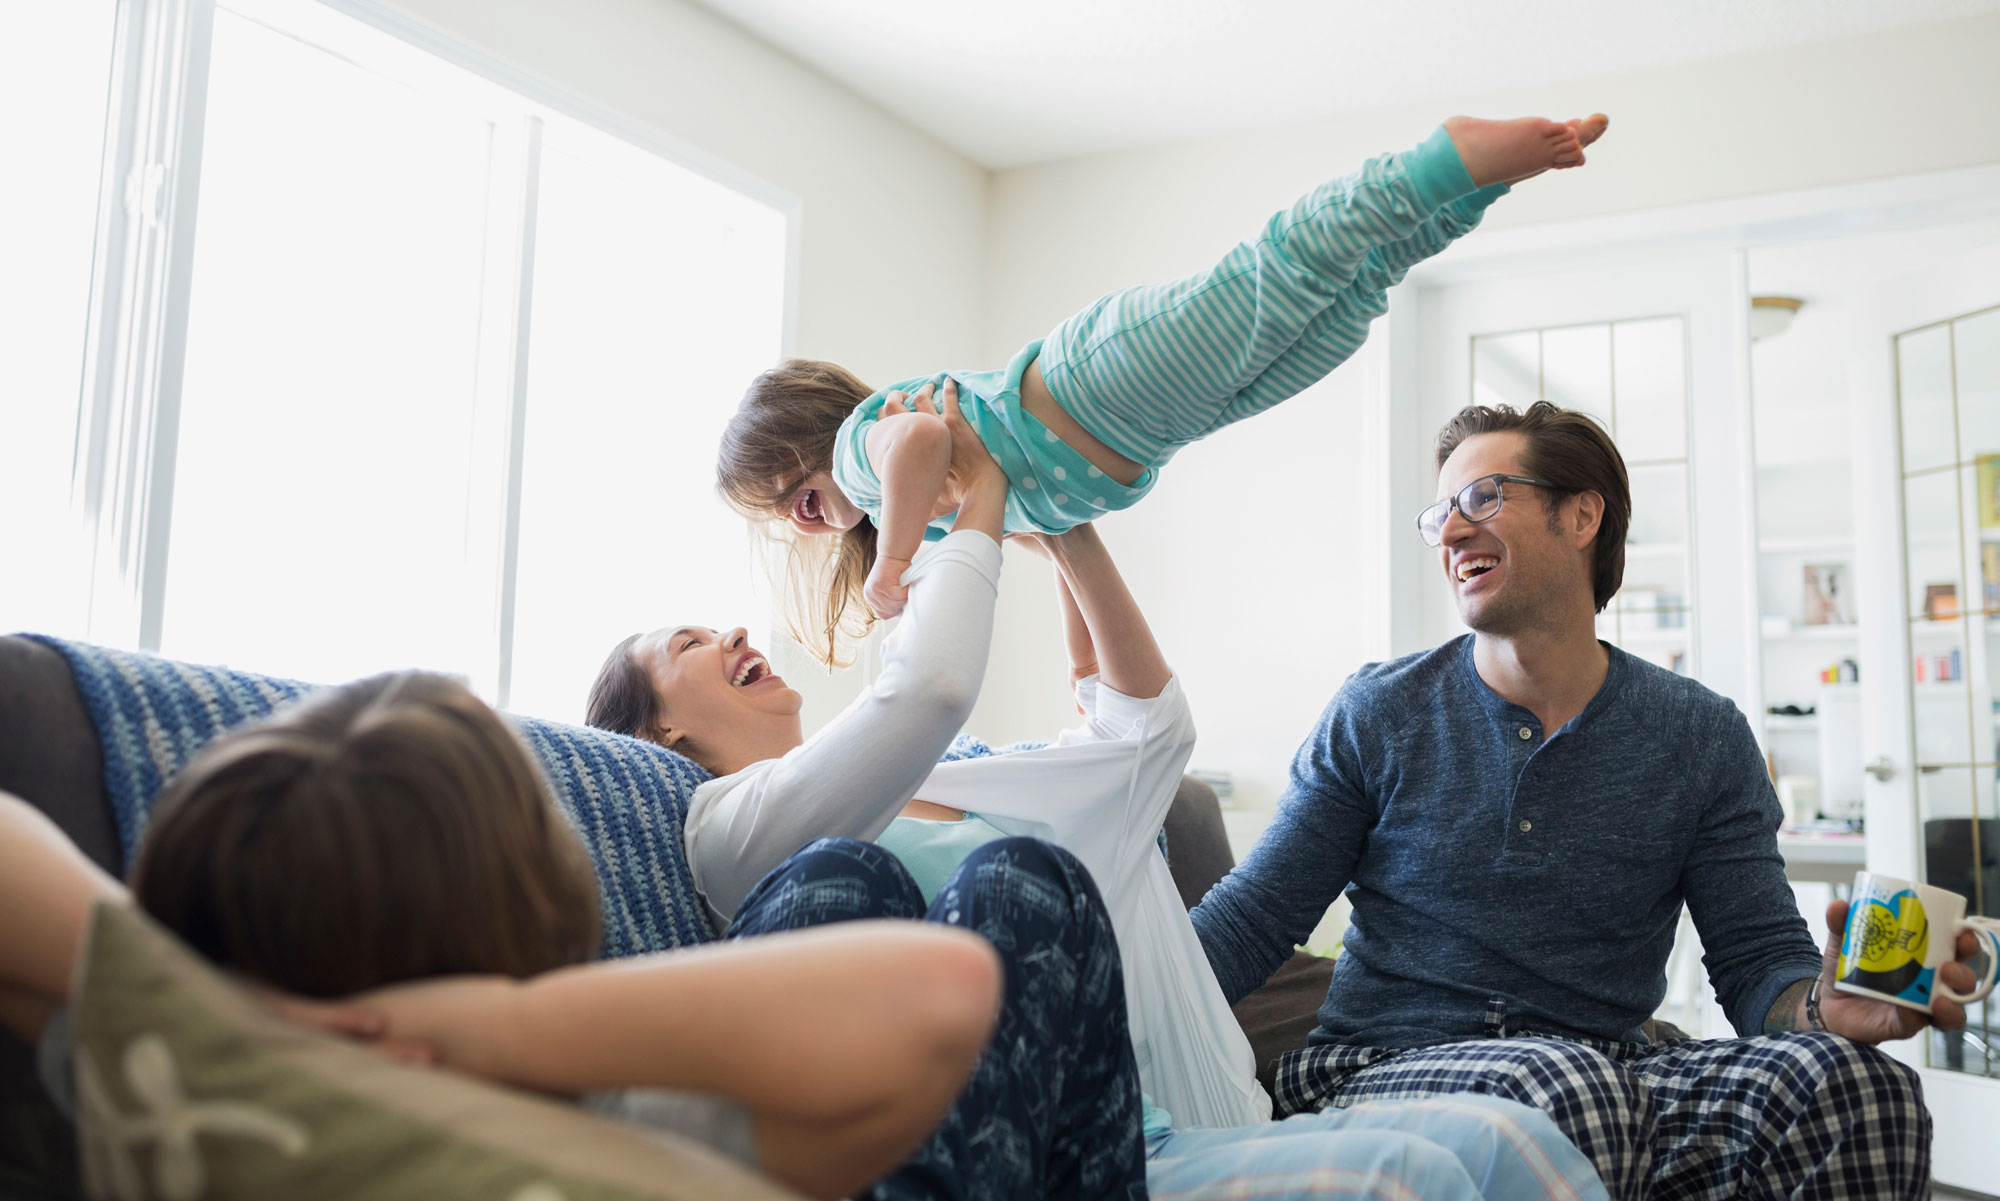 Family dressed in pajamas holding child in the air.